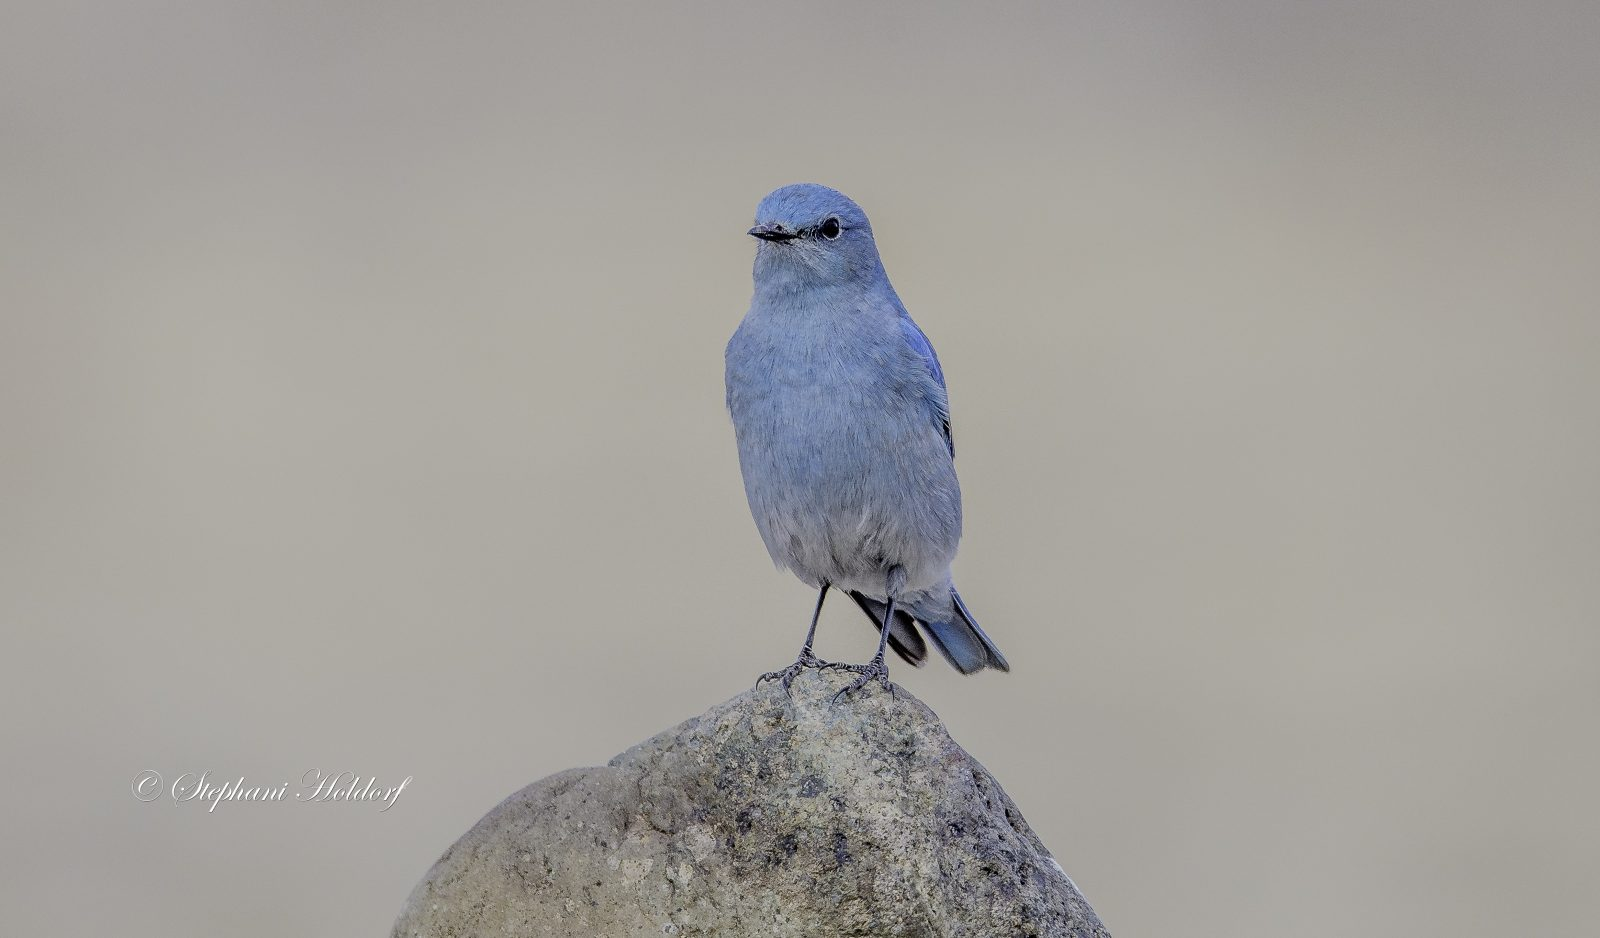 Perched on a rock